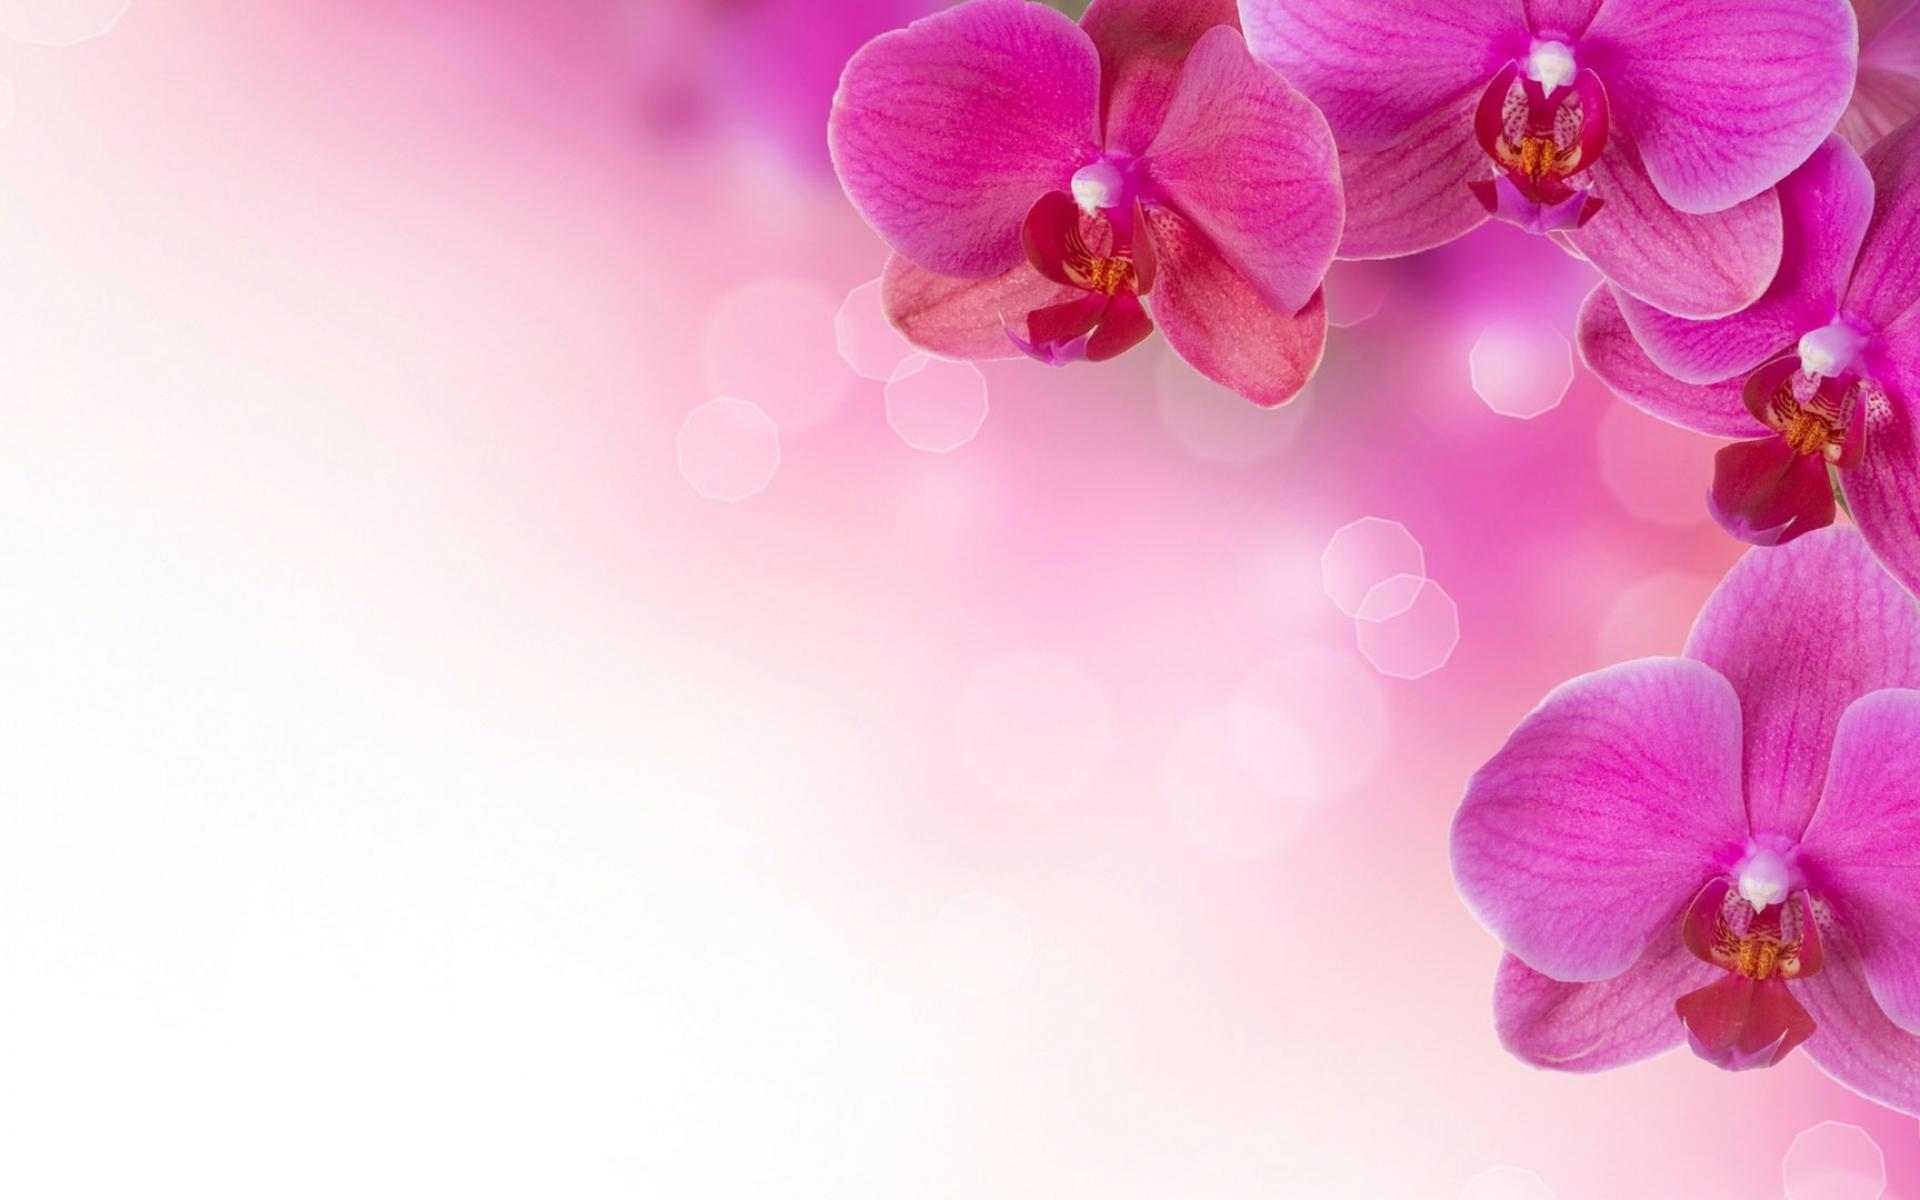 Pink Flower Image Backgrounds Wallpaper Cave